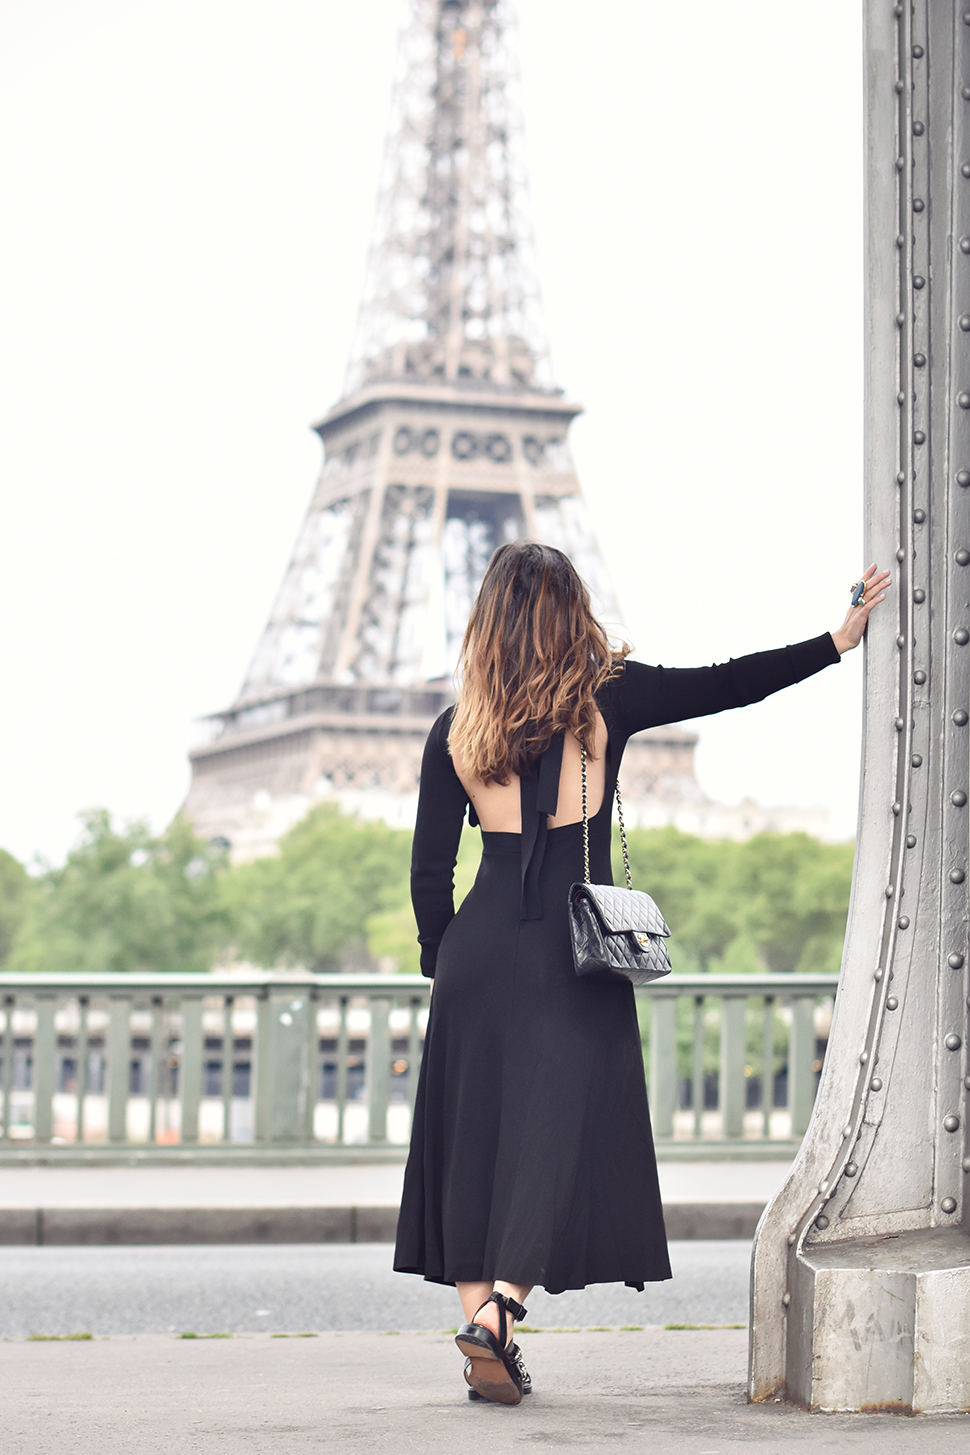 Helloitsvalentine_blackdress_BirHakeim_Givenchy_sandals_8